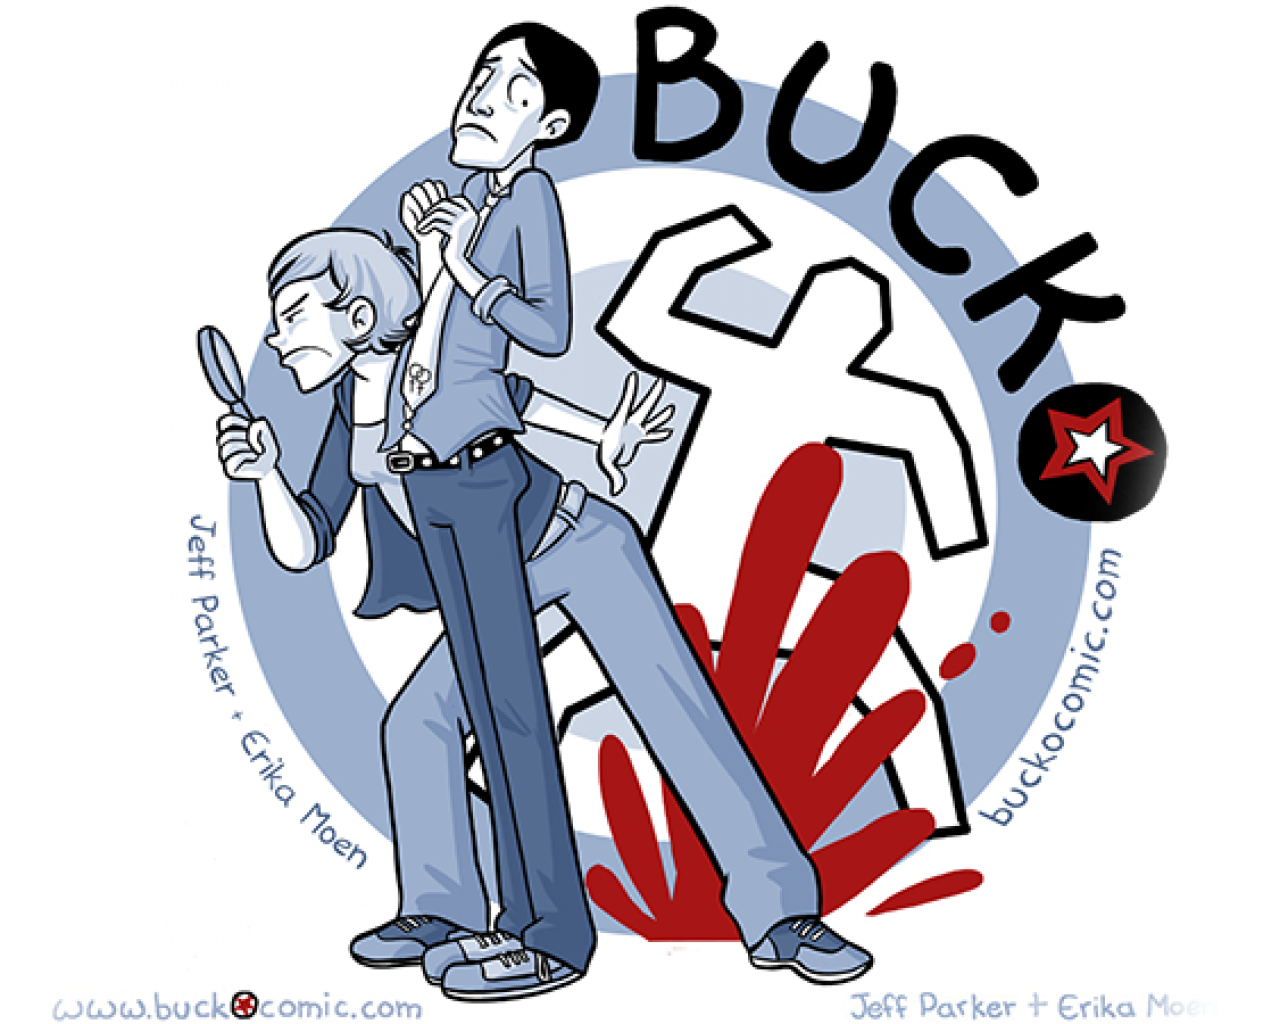 Poster Image for Bucko